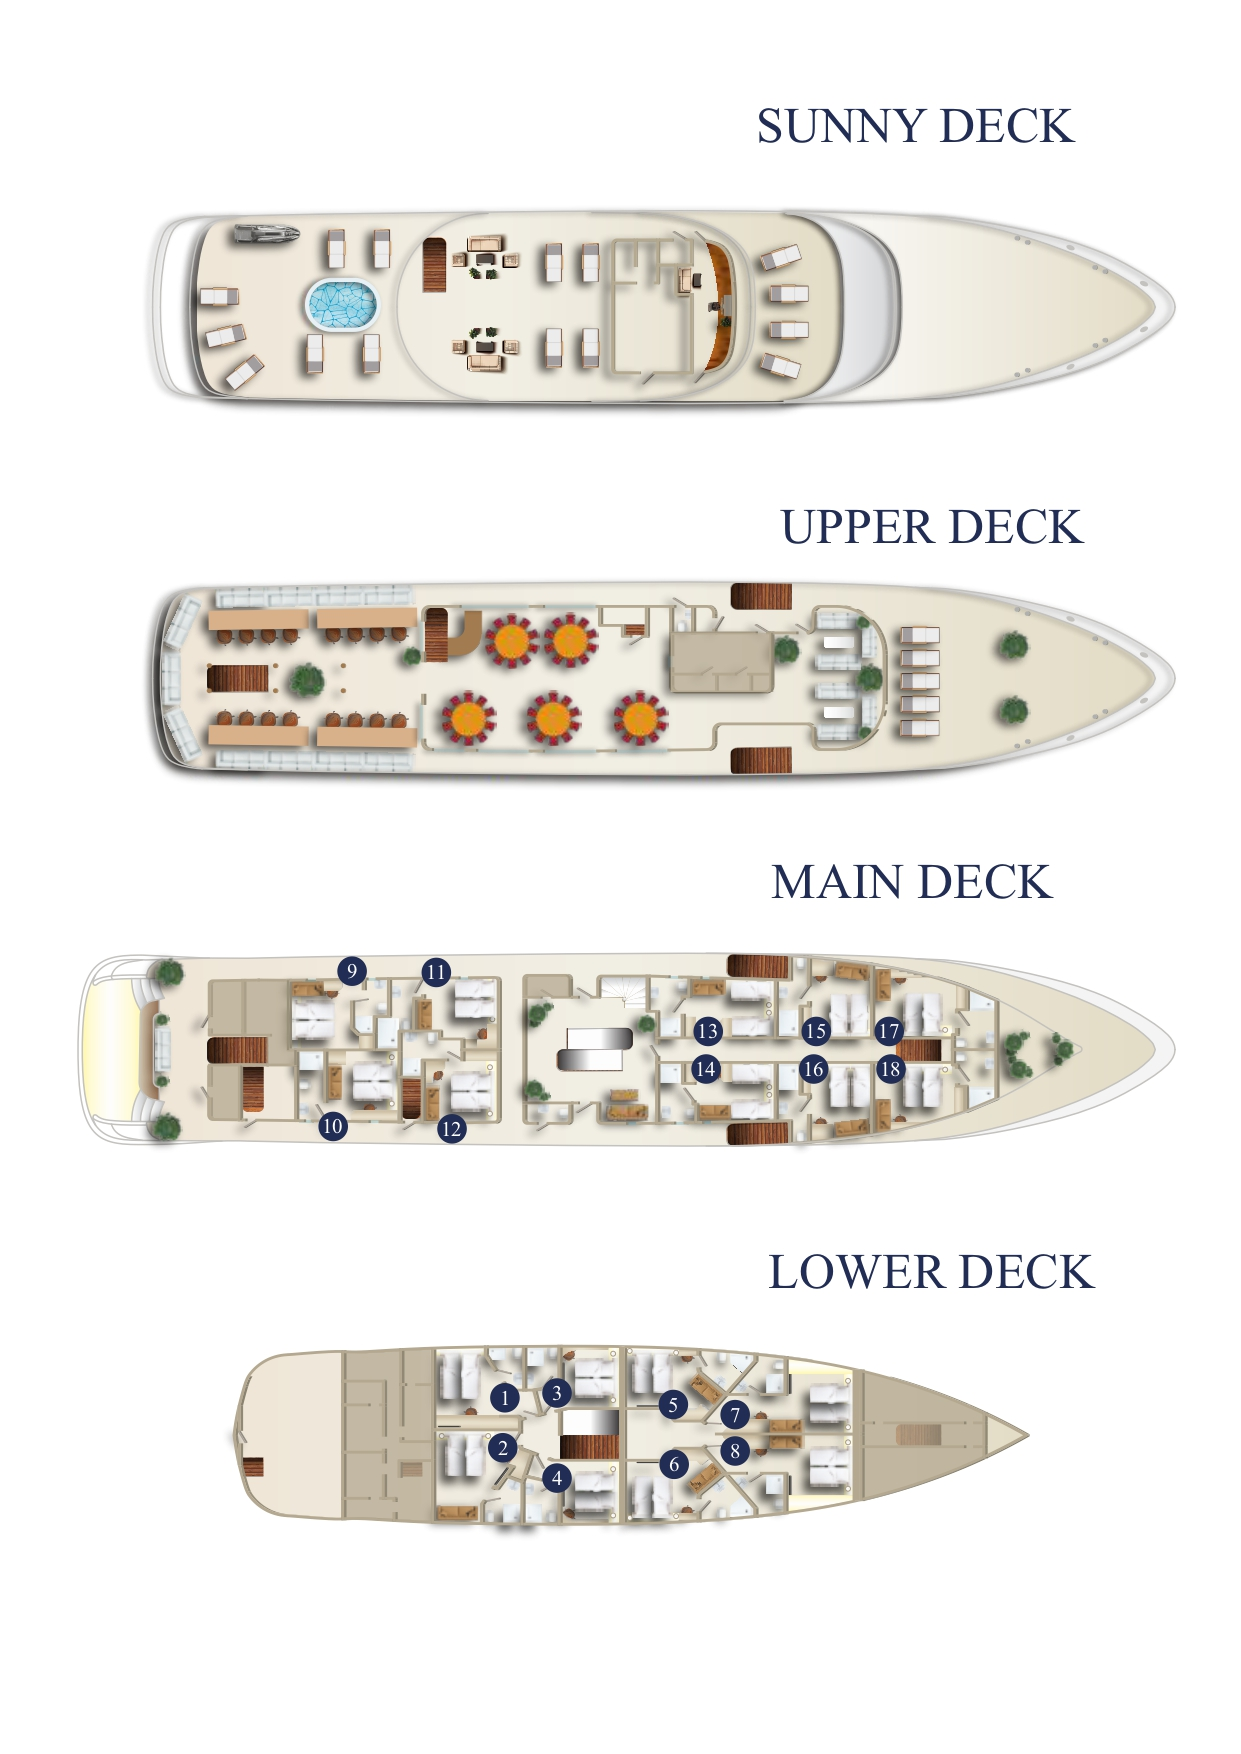 MS Sea Swallow Deck Plan